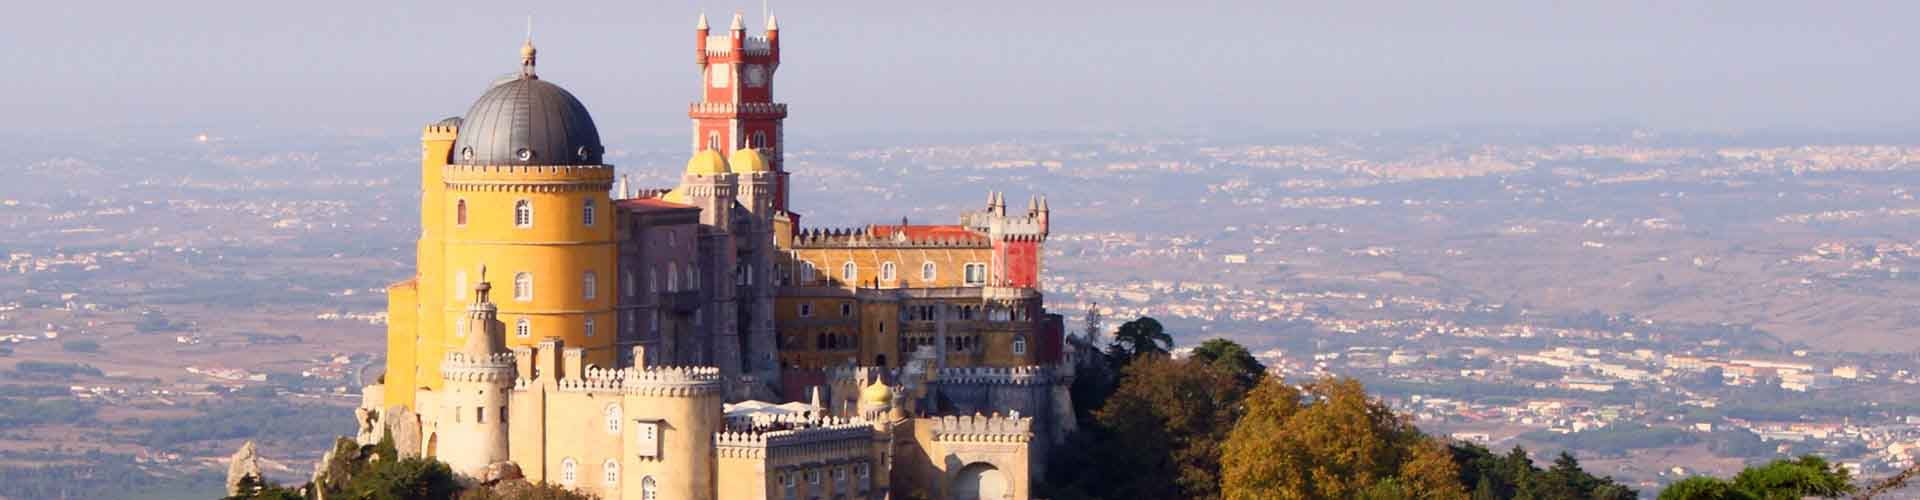 Sintra – Hostels in Sintra. Maps for Sintra, Photos and Reviews for each hostel in Sintra.